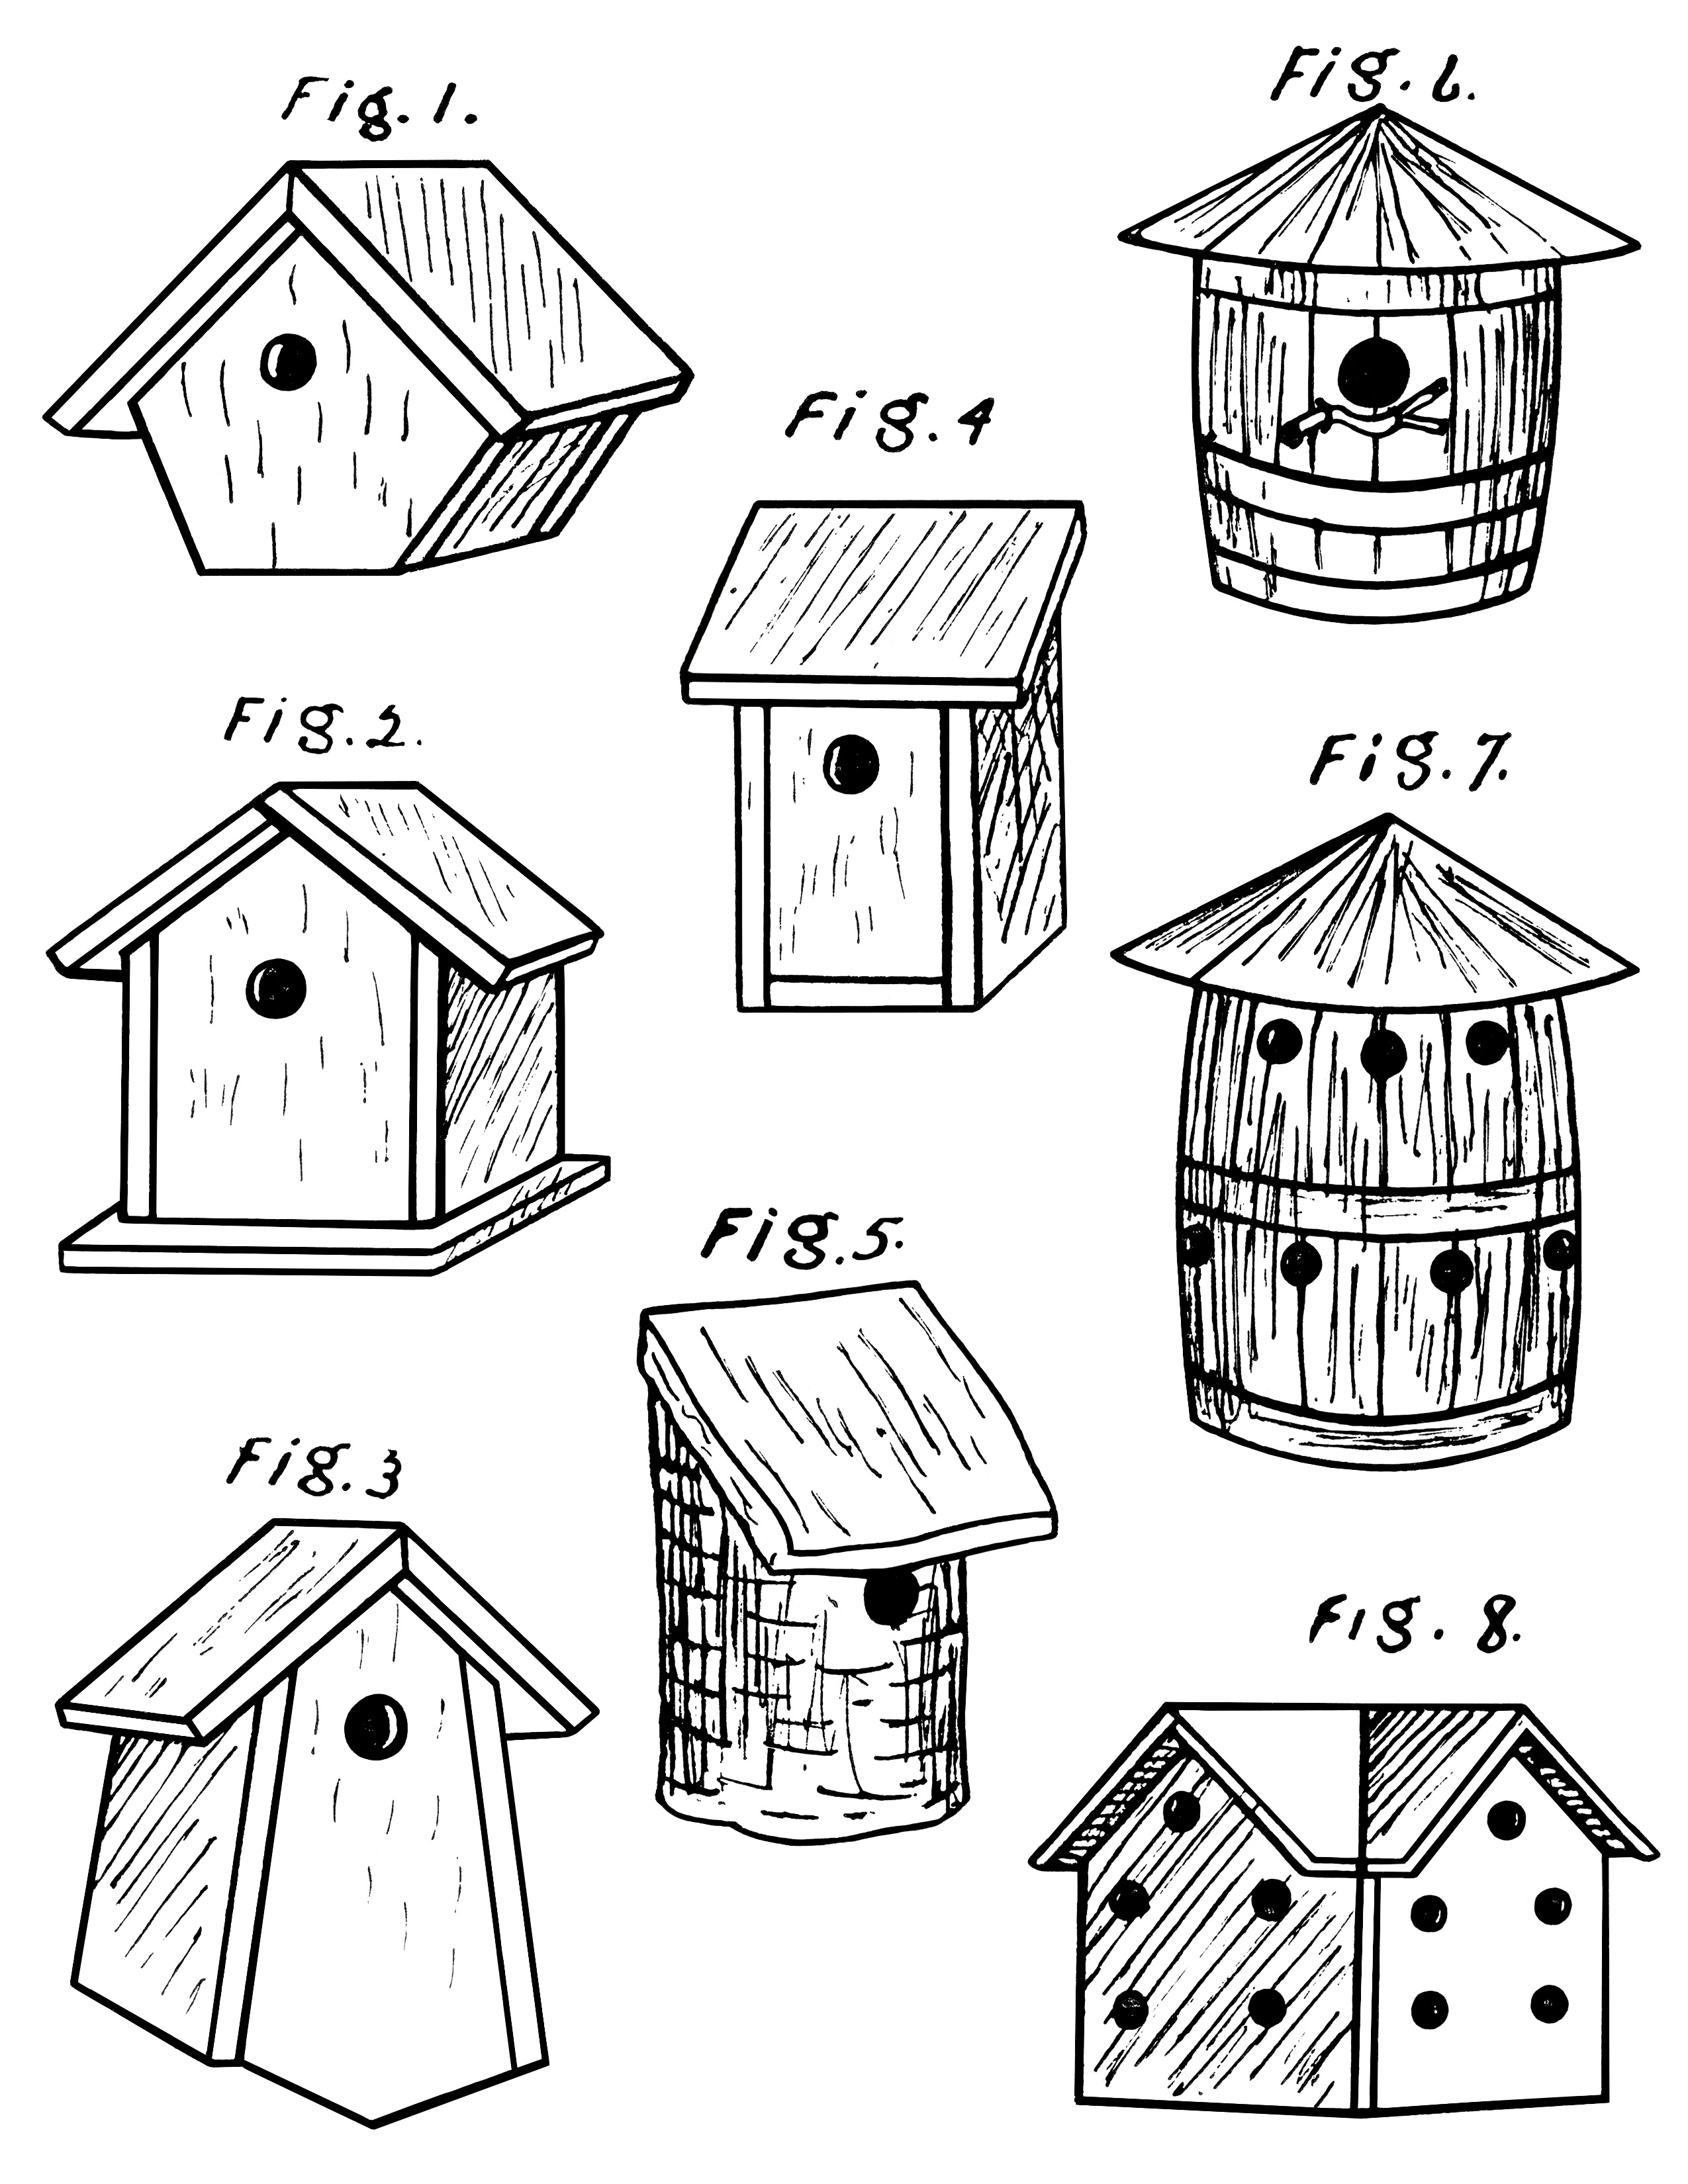 Bird House Drawing at GetDrawings.com | Free for personal use Bird